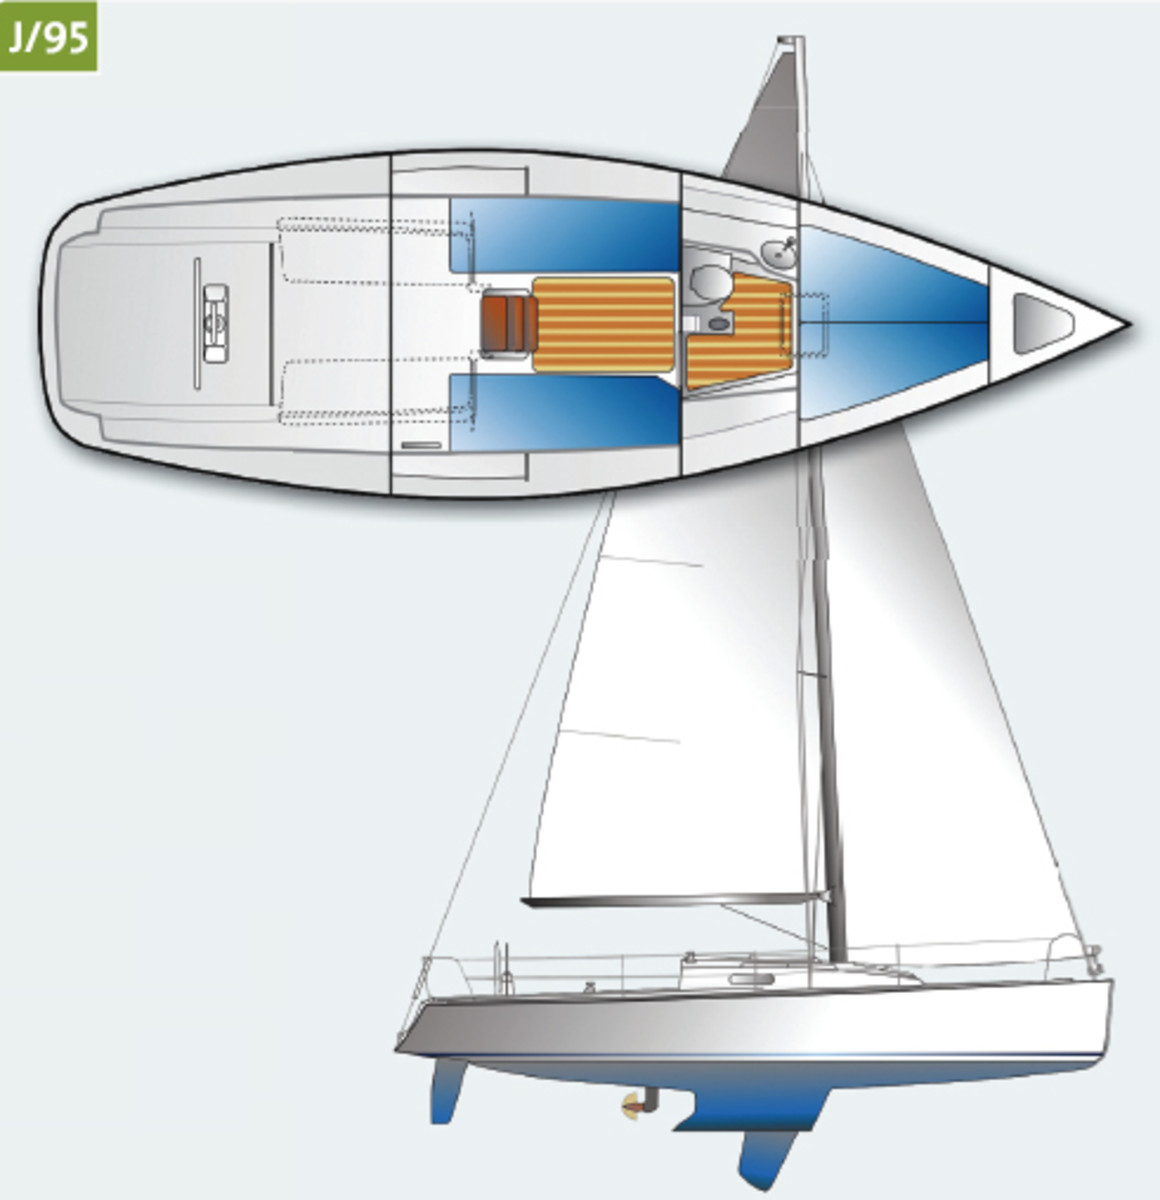 j95_interior_diagram